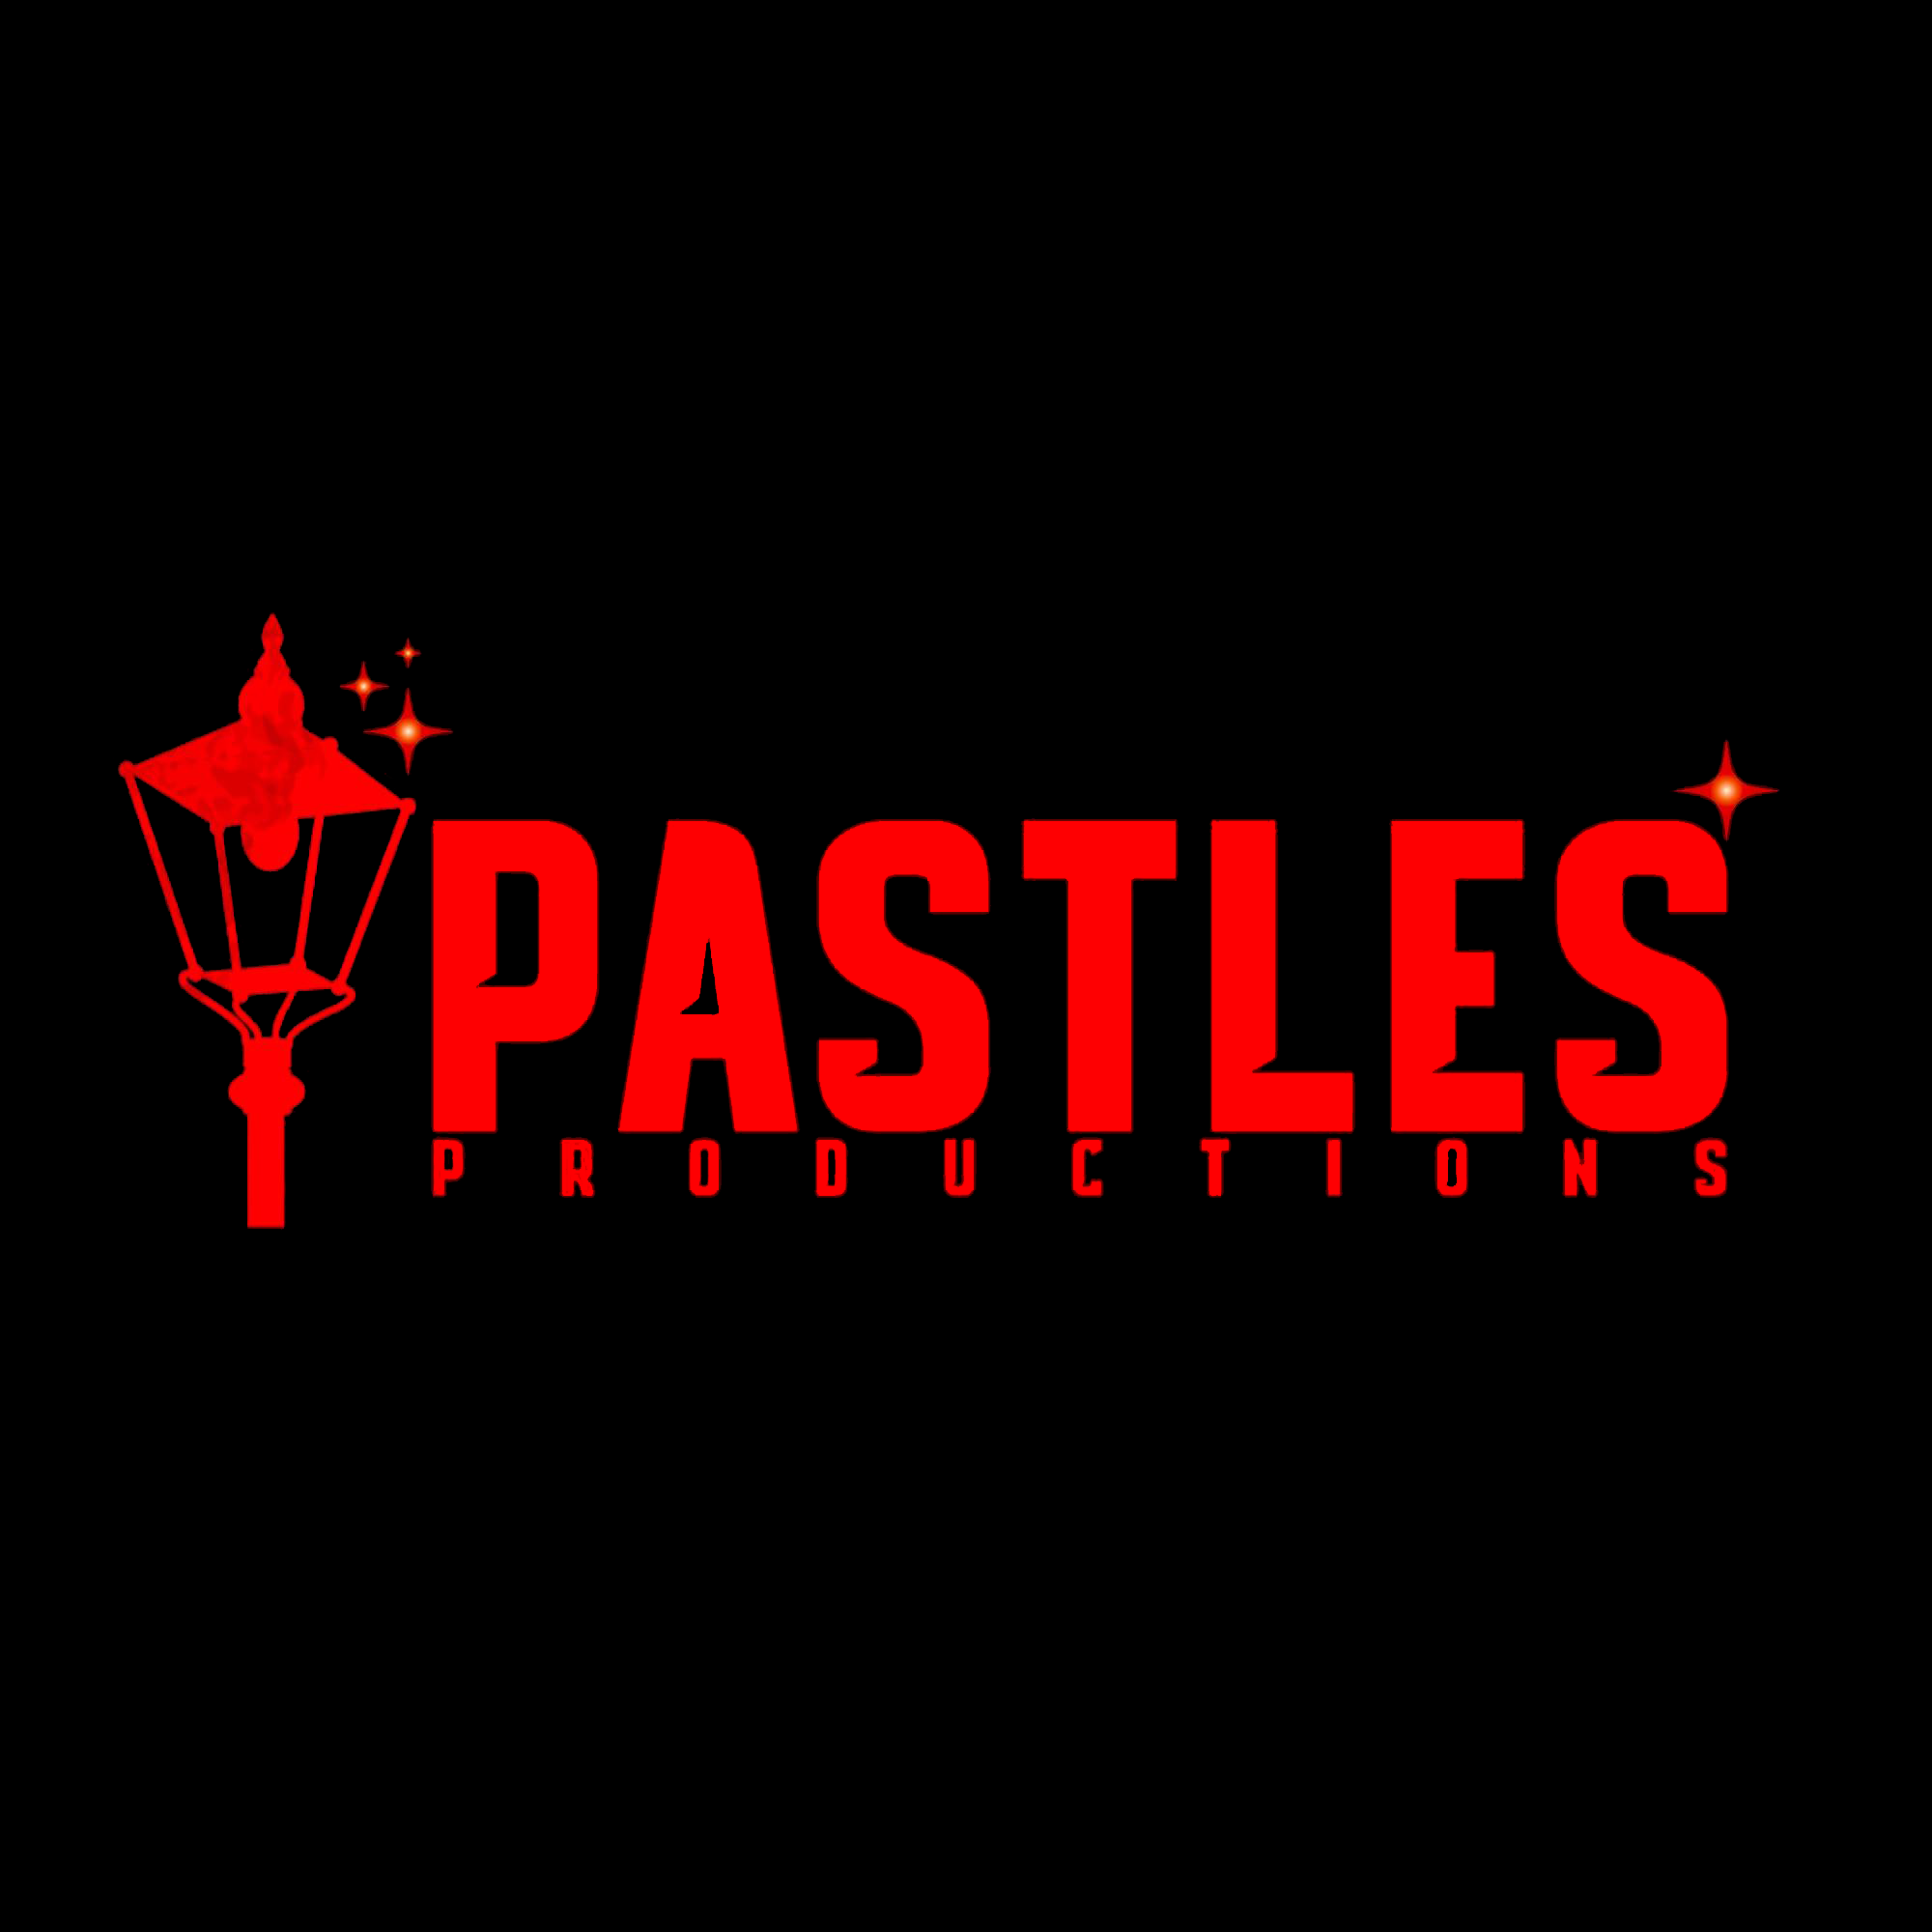 Pastles Productions Logo